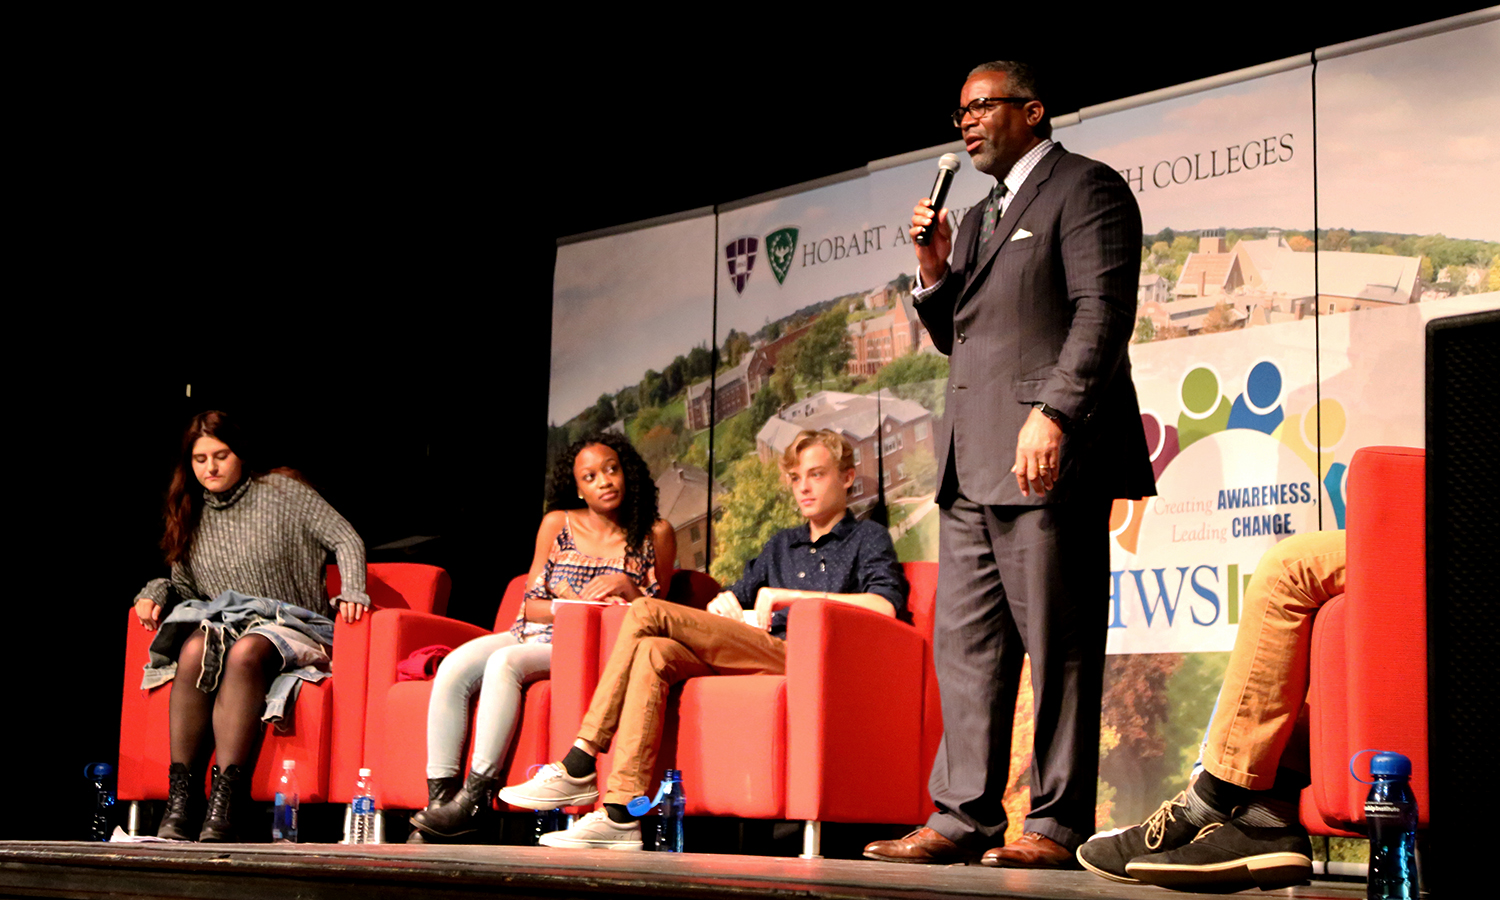 President Gregory J. Vincent '83 speaks to students during HWS Impact in the Bartlett Theatre.